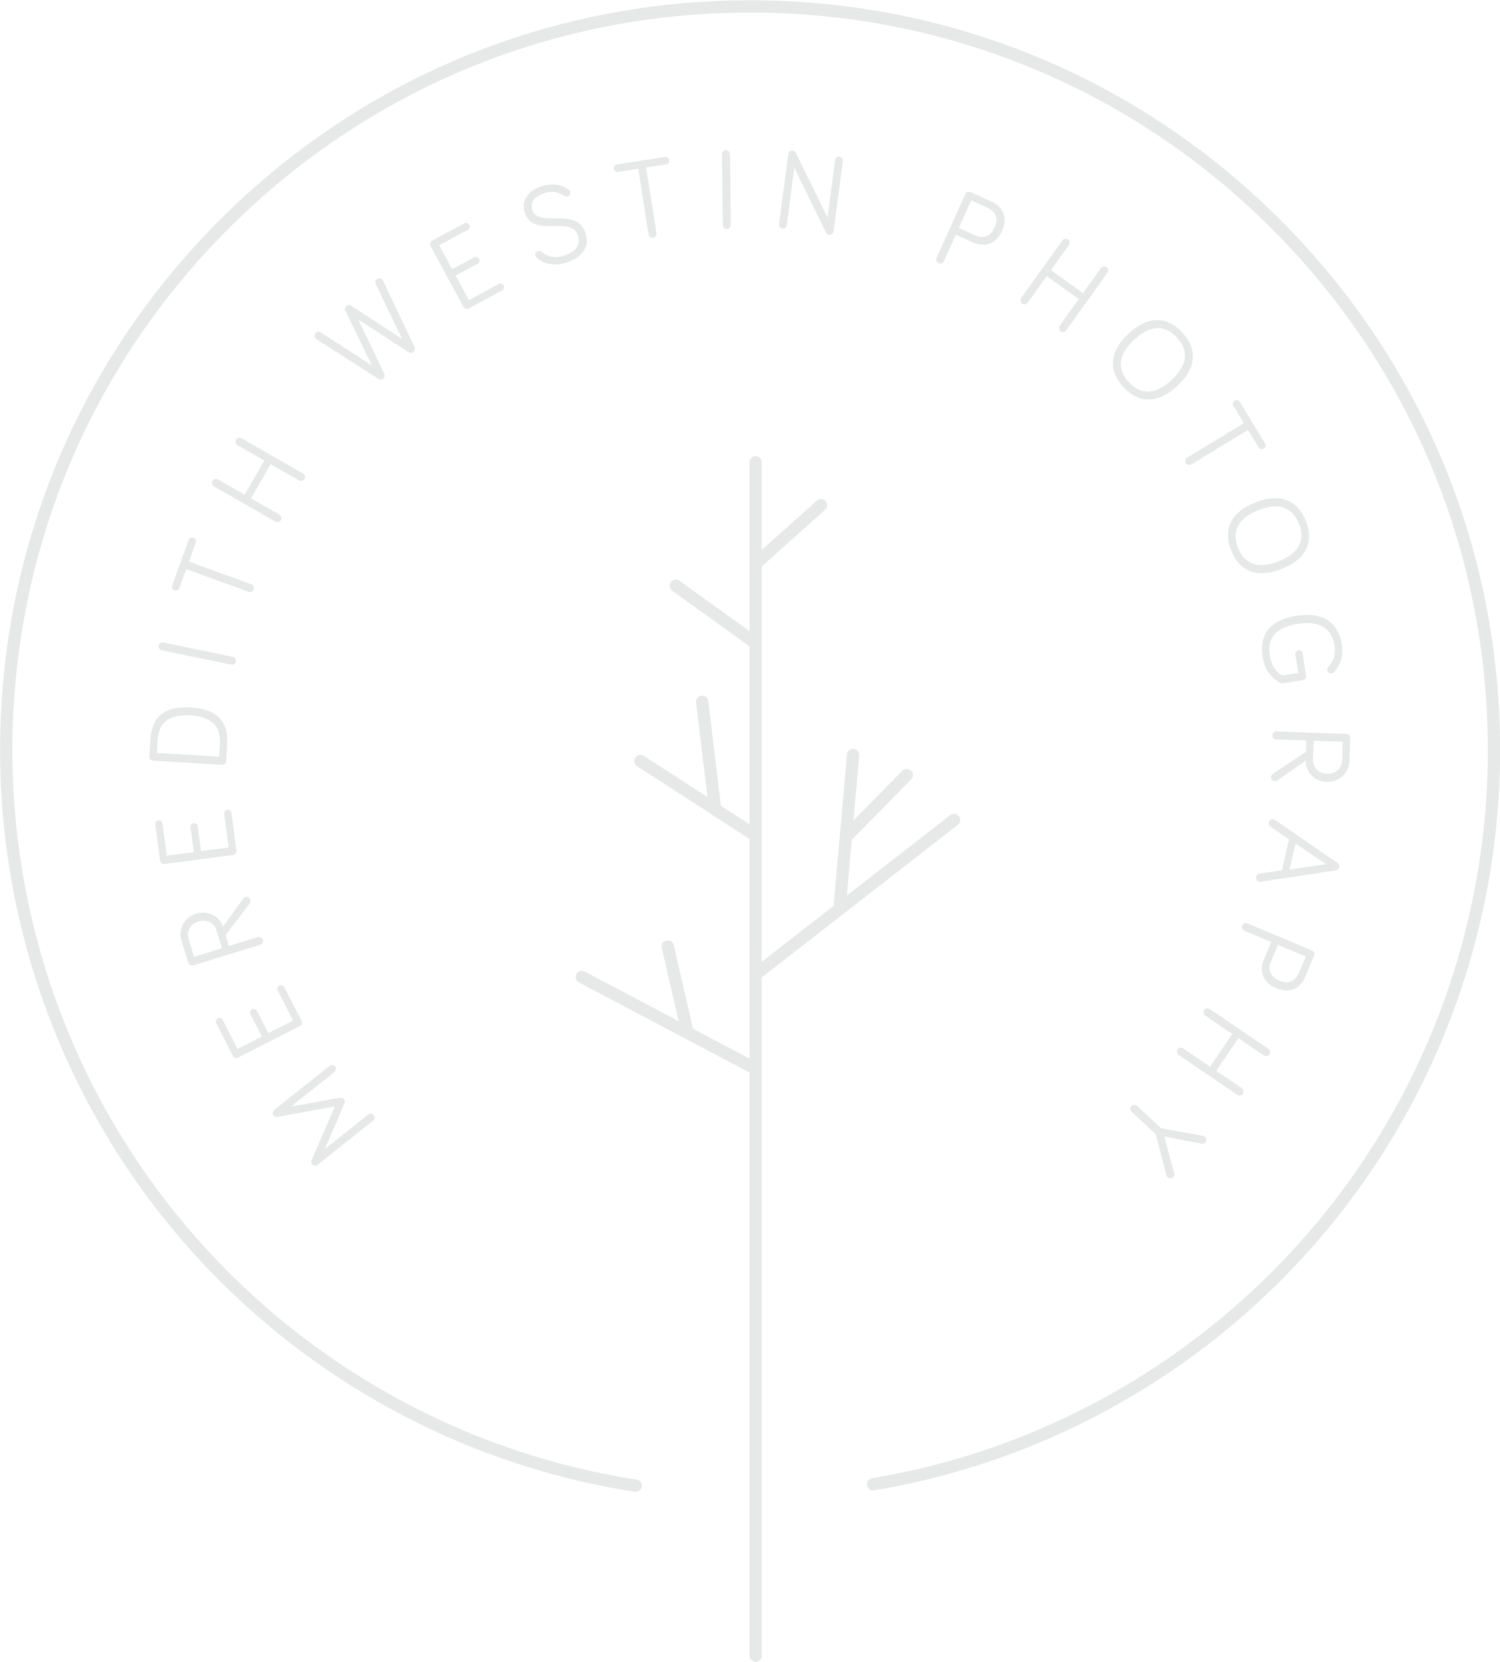 Meredith Westin Photography: Minneapolis and St. Paul Birth + Postpartum Photographer